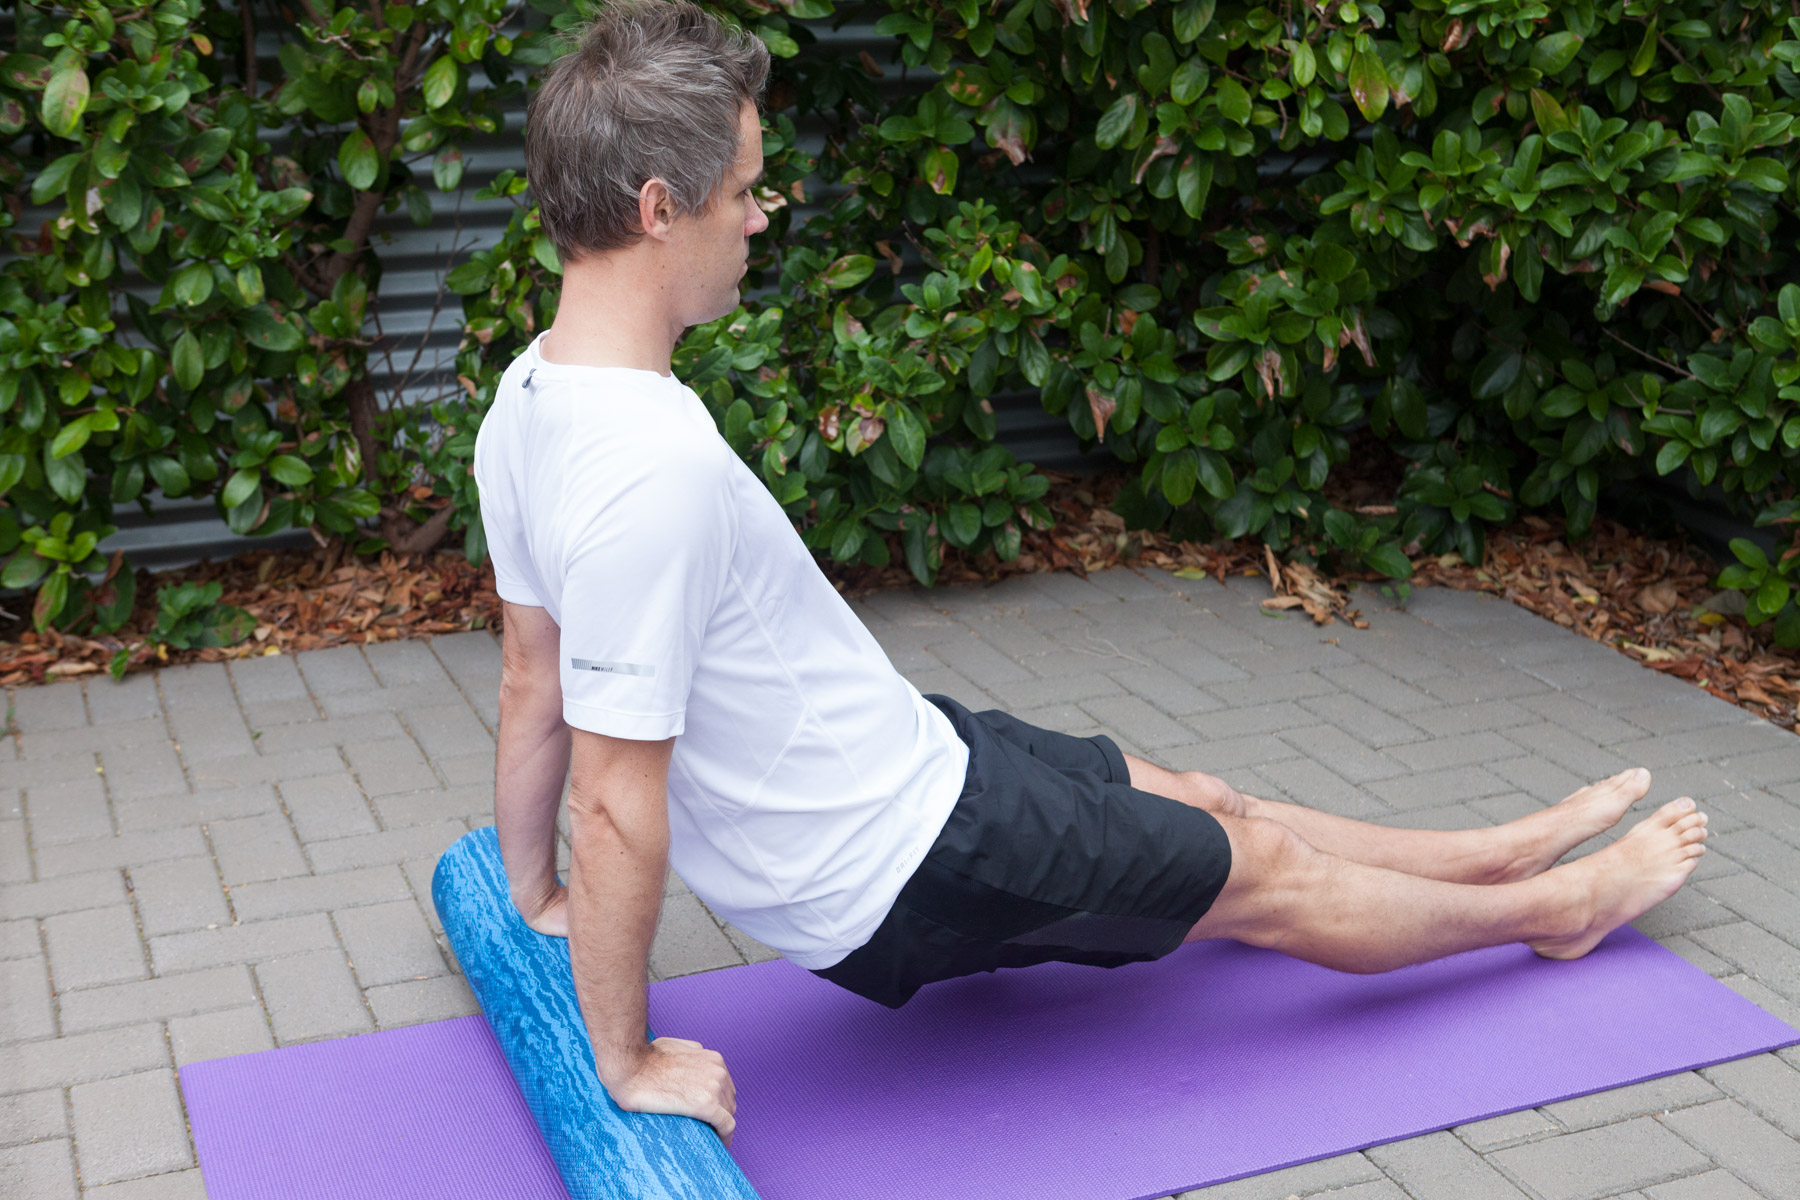 Tricep Dips   Use the foam roller to bring some more intensity to the tricep dip.  This exercise will help develop resilience in the shoulder stabilisers.  Take care not to do too much too soon.